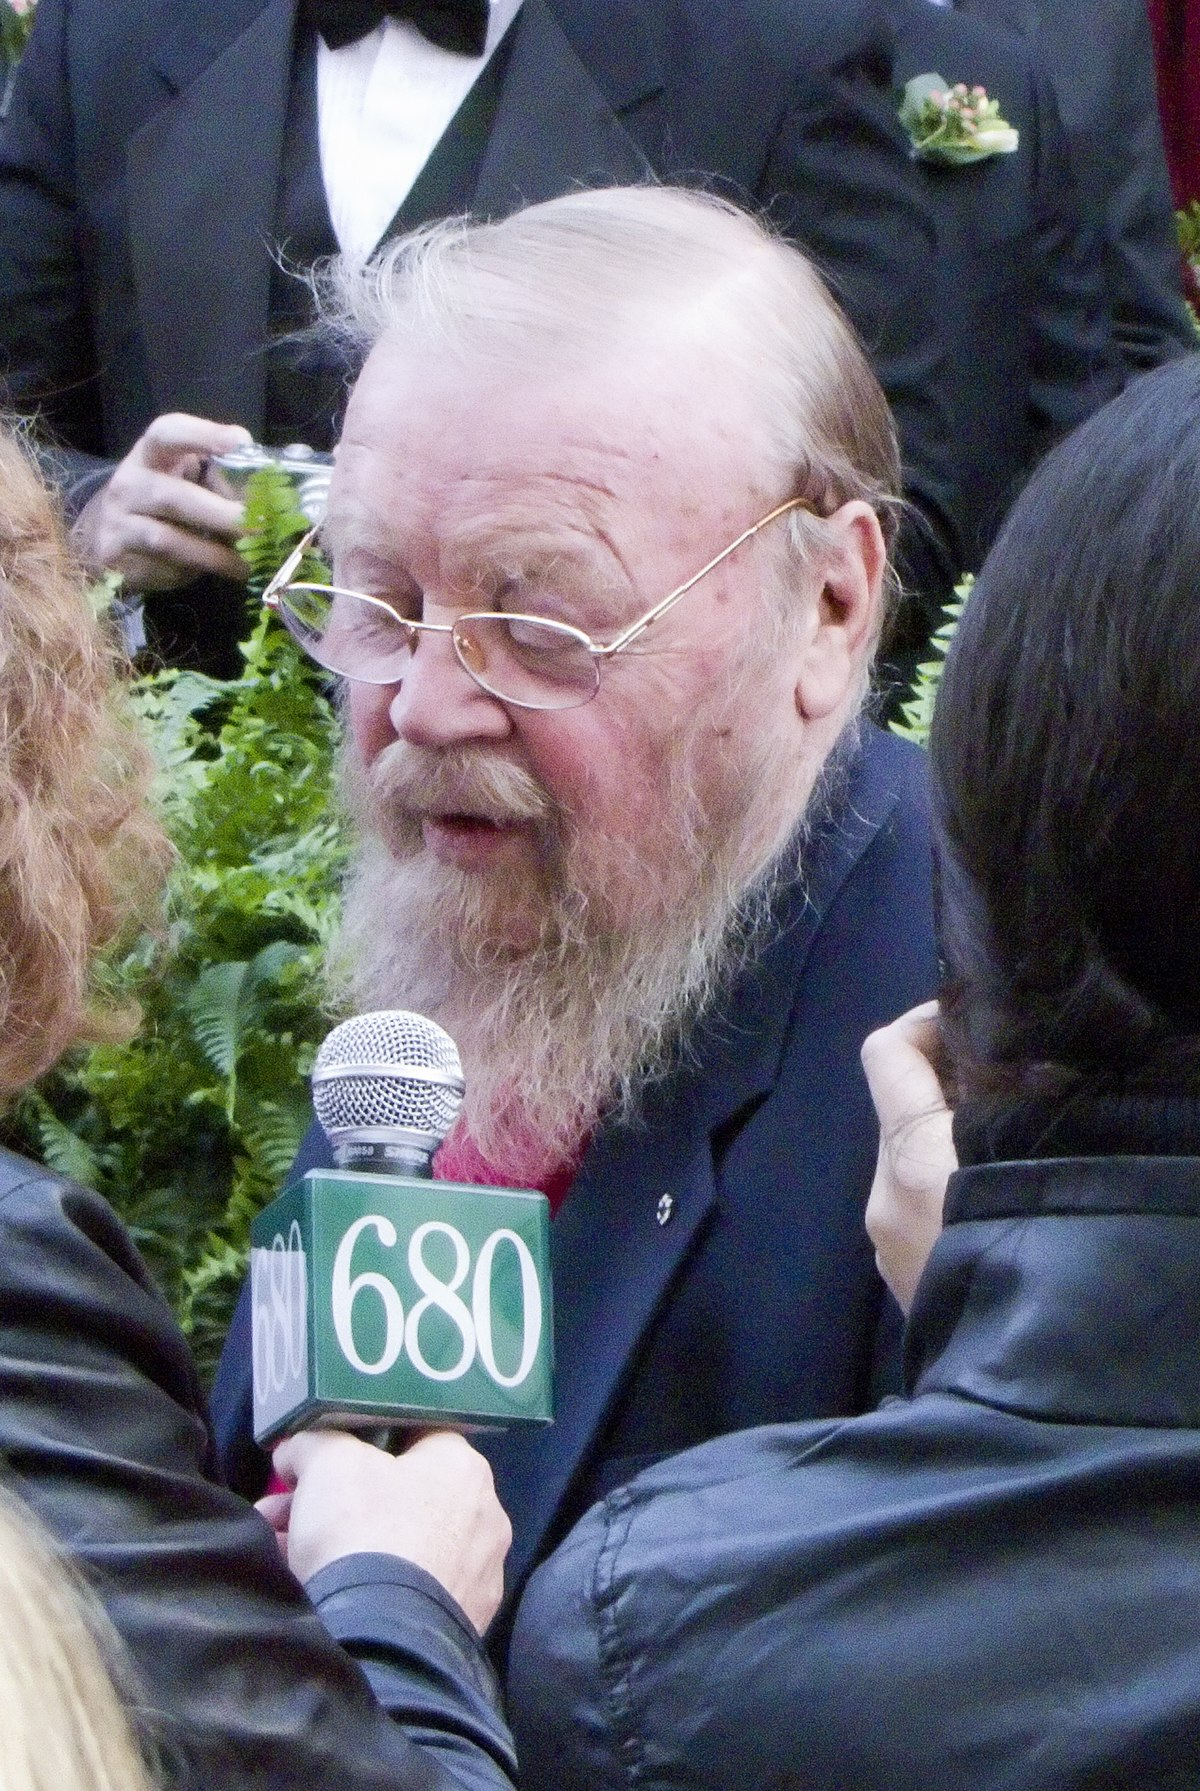 Farley mowat wikipedia for Claire nevers wikipedia